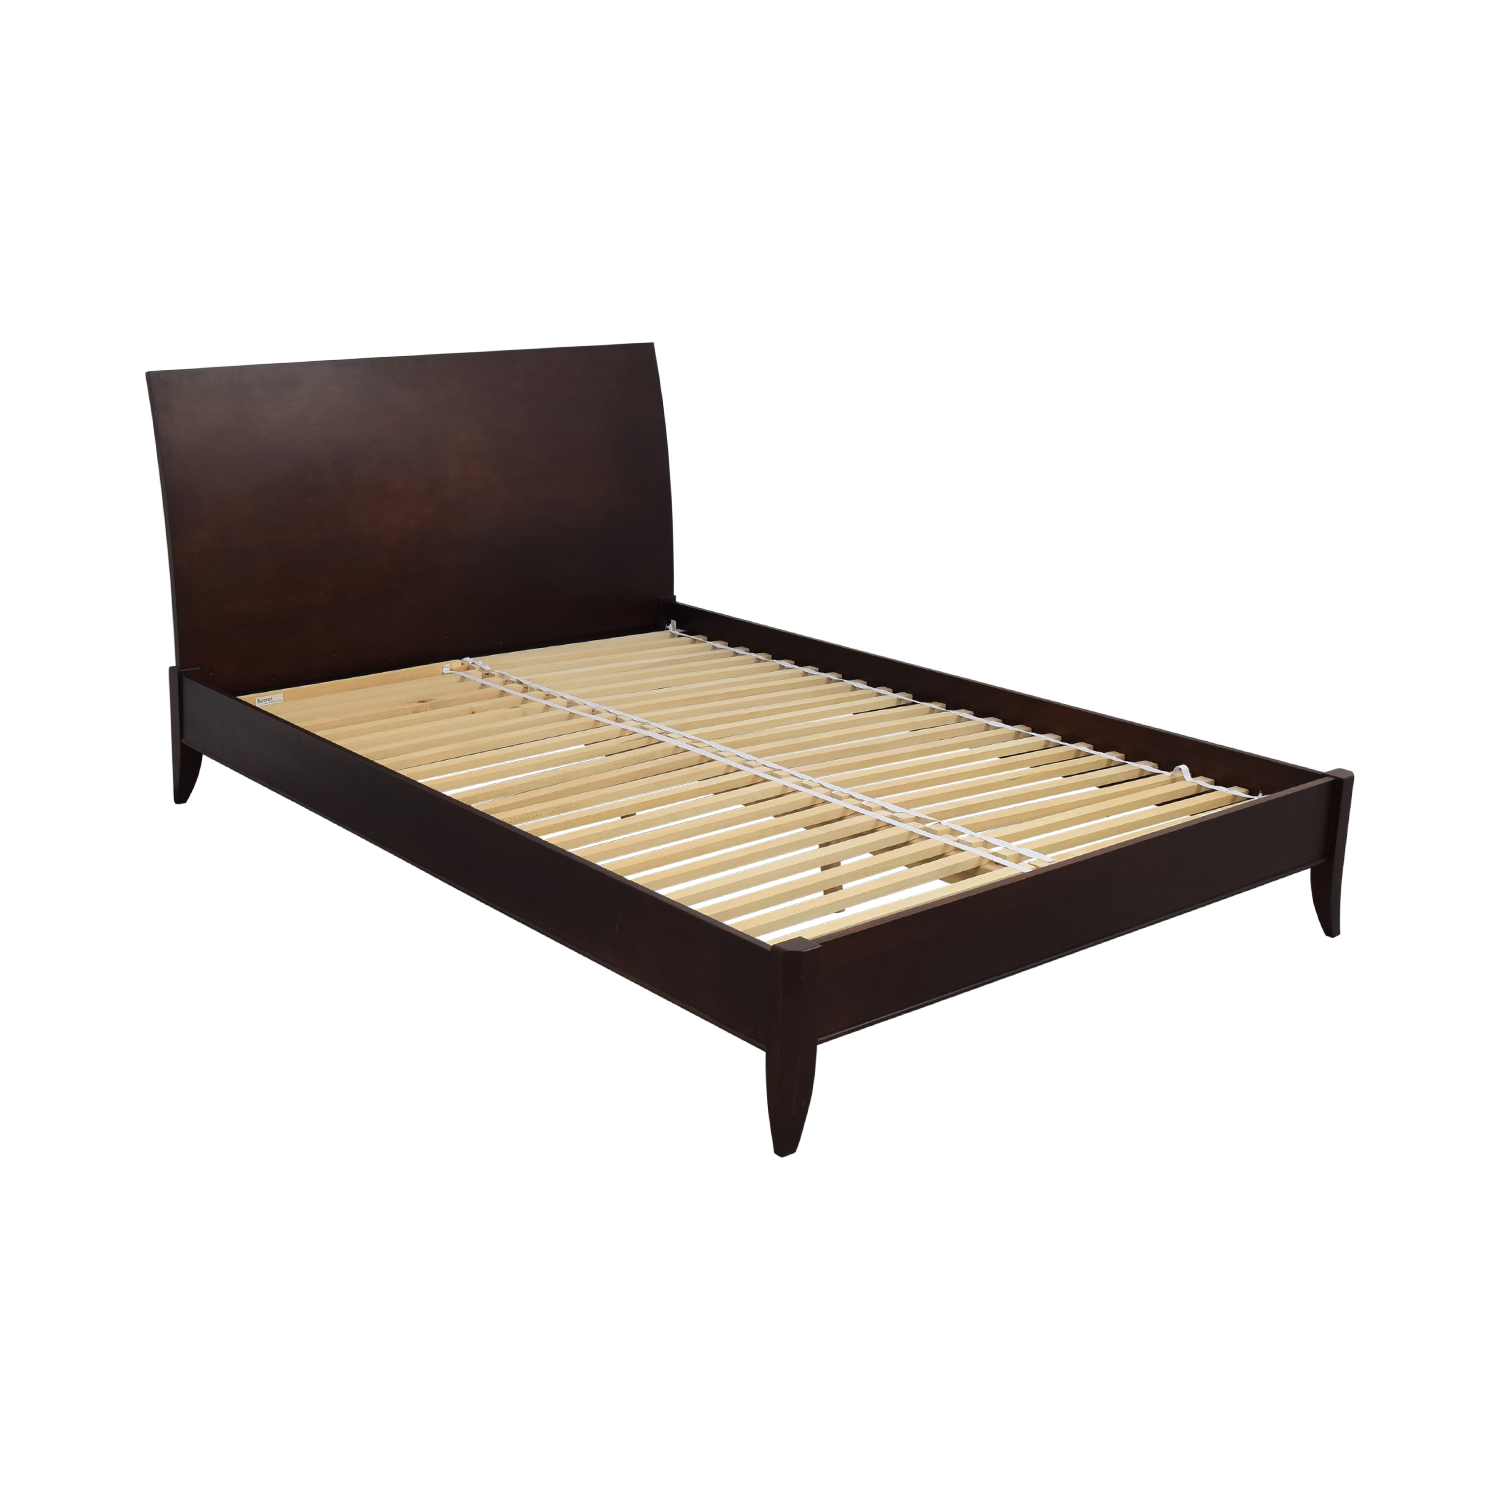 Baronet Baronet Queen Bed Frame Bed Frames